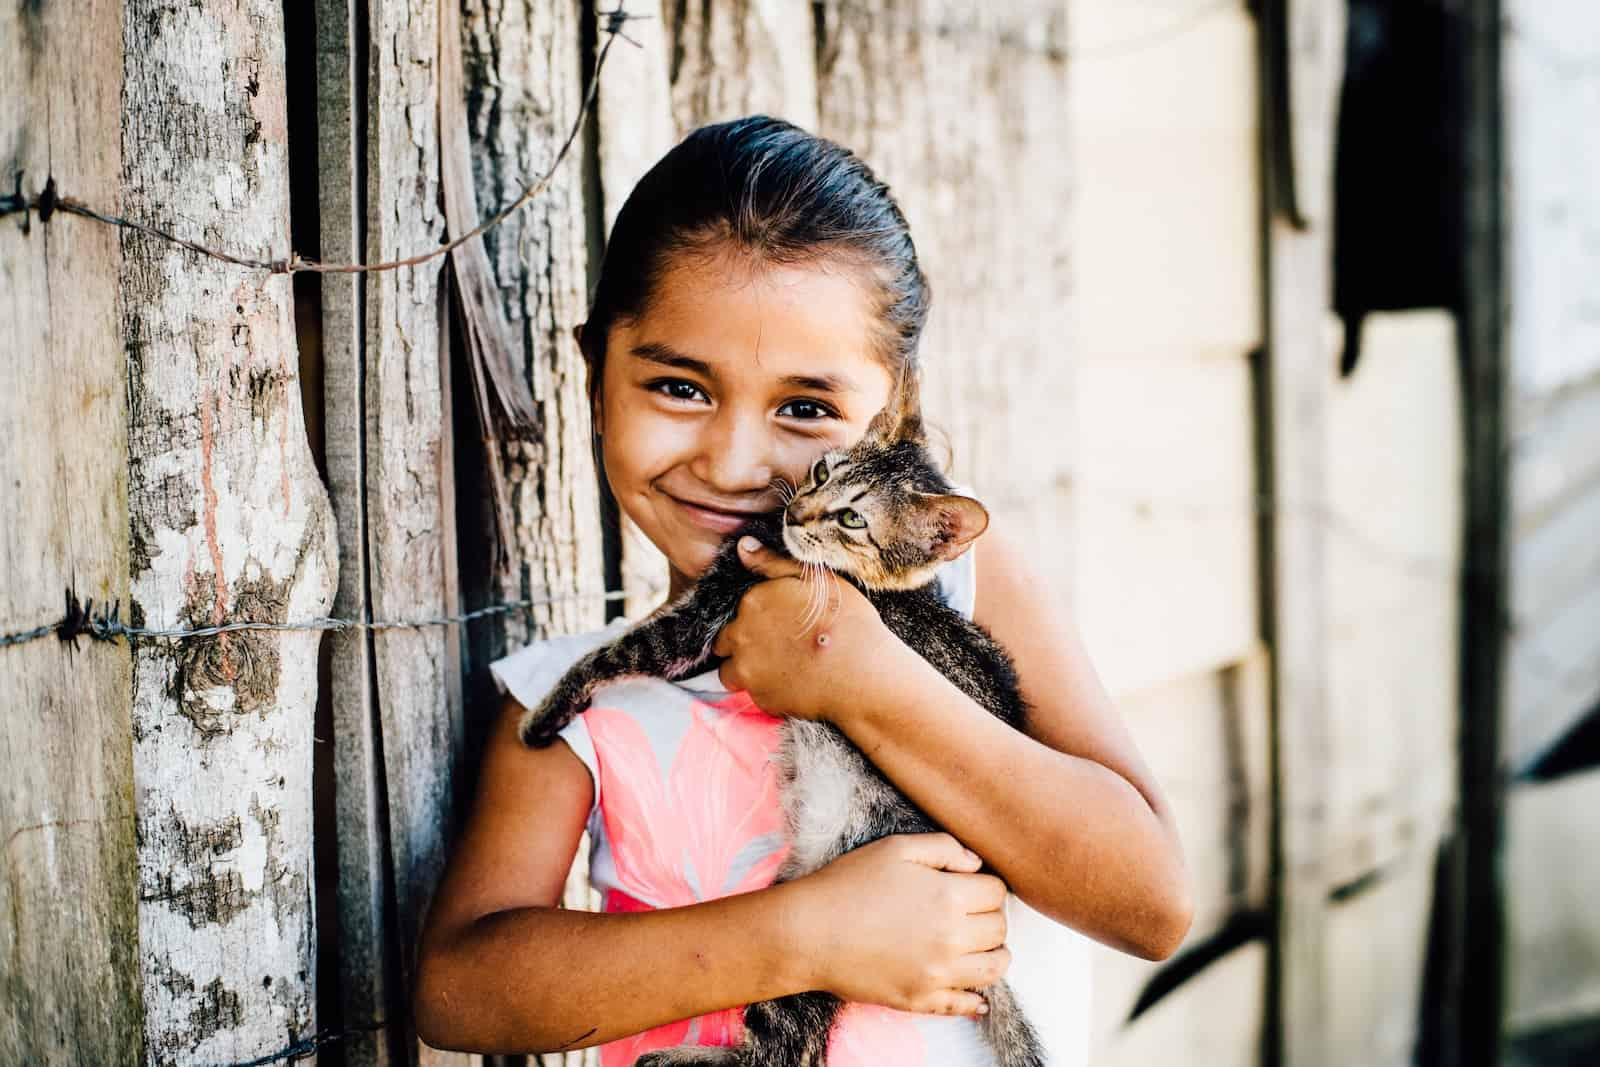 A young girl wearing a white T-shirt cuddles a kitten in front of a wooden fence.